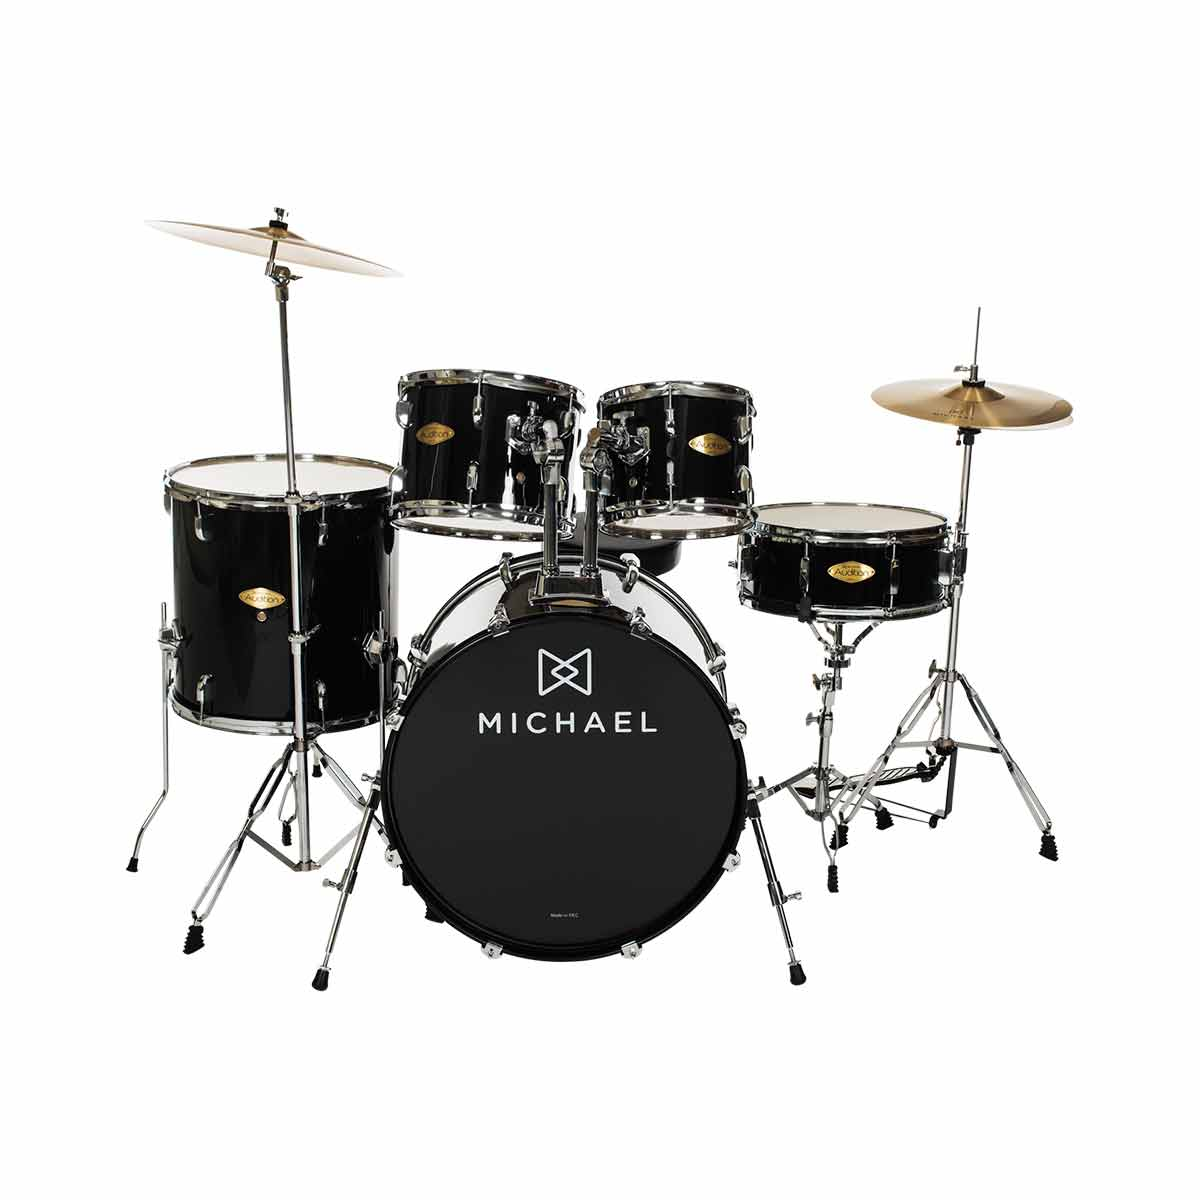 Bateria Ac�stica Bumbo 18 Polegadas Audition DM826 BK Preta - Michael